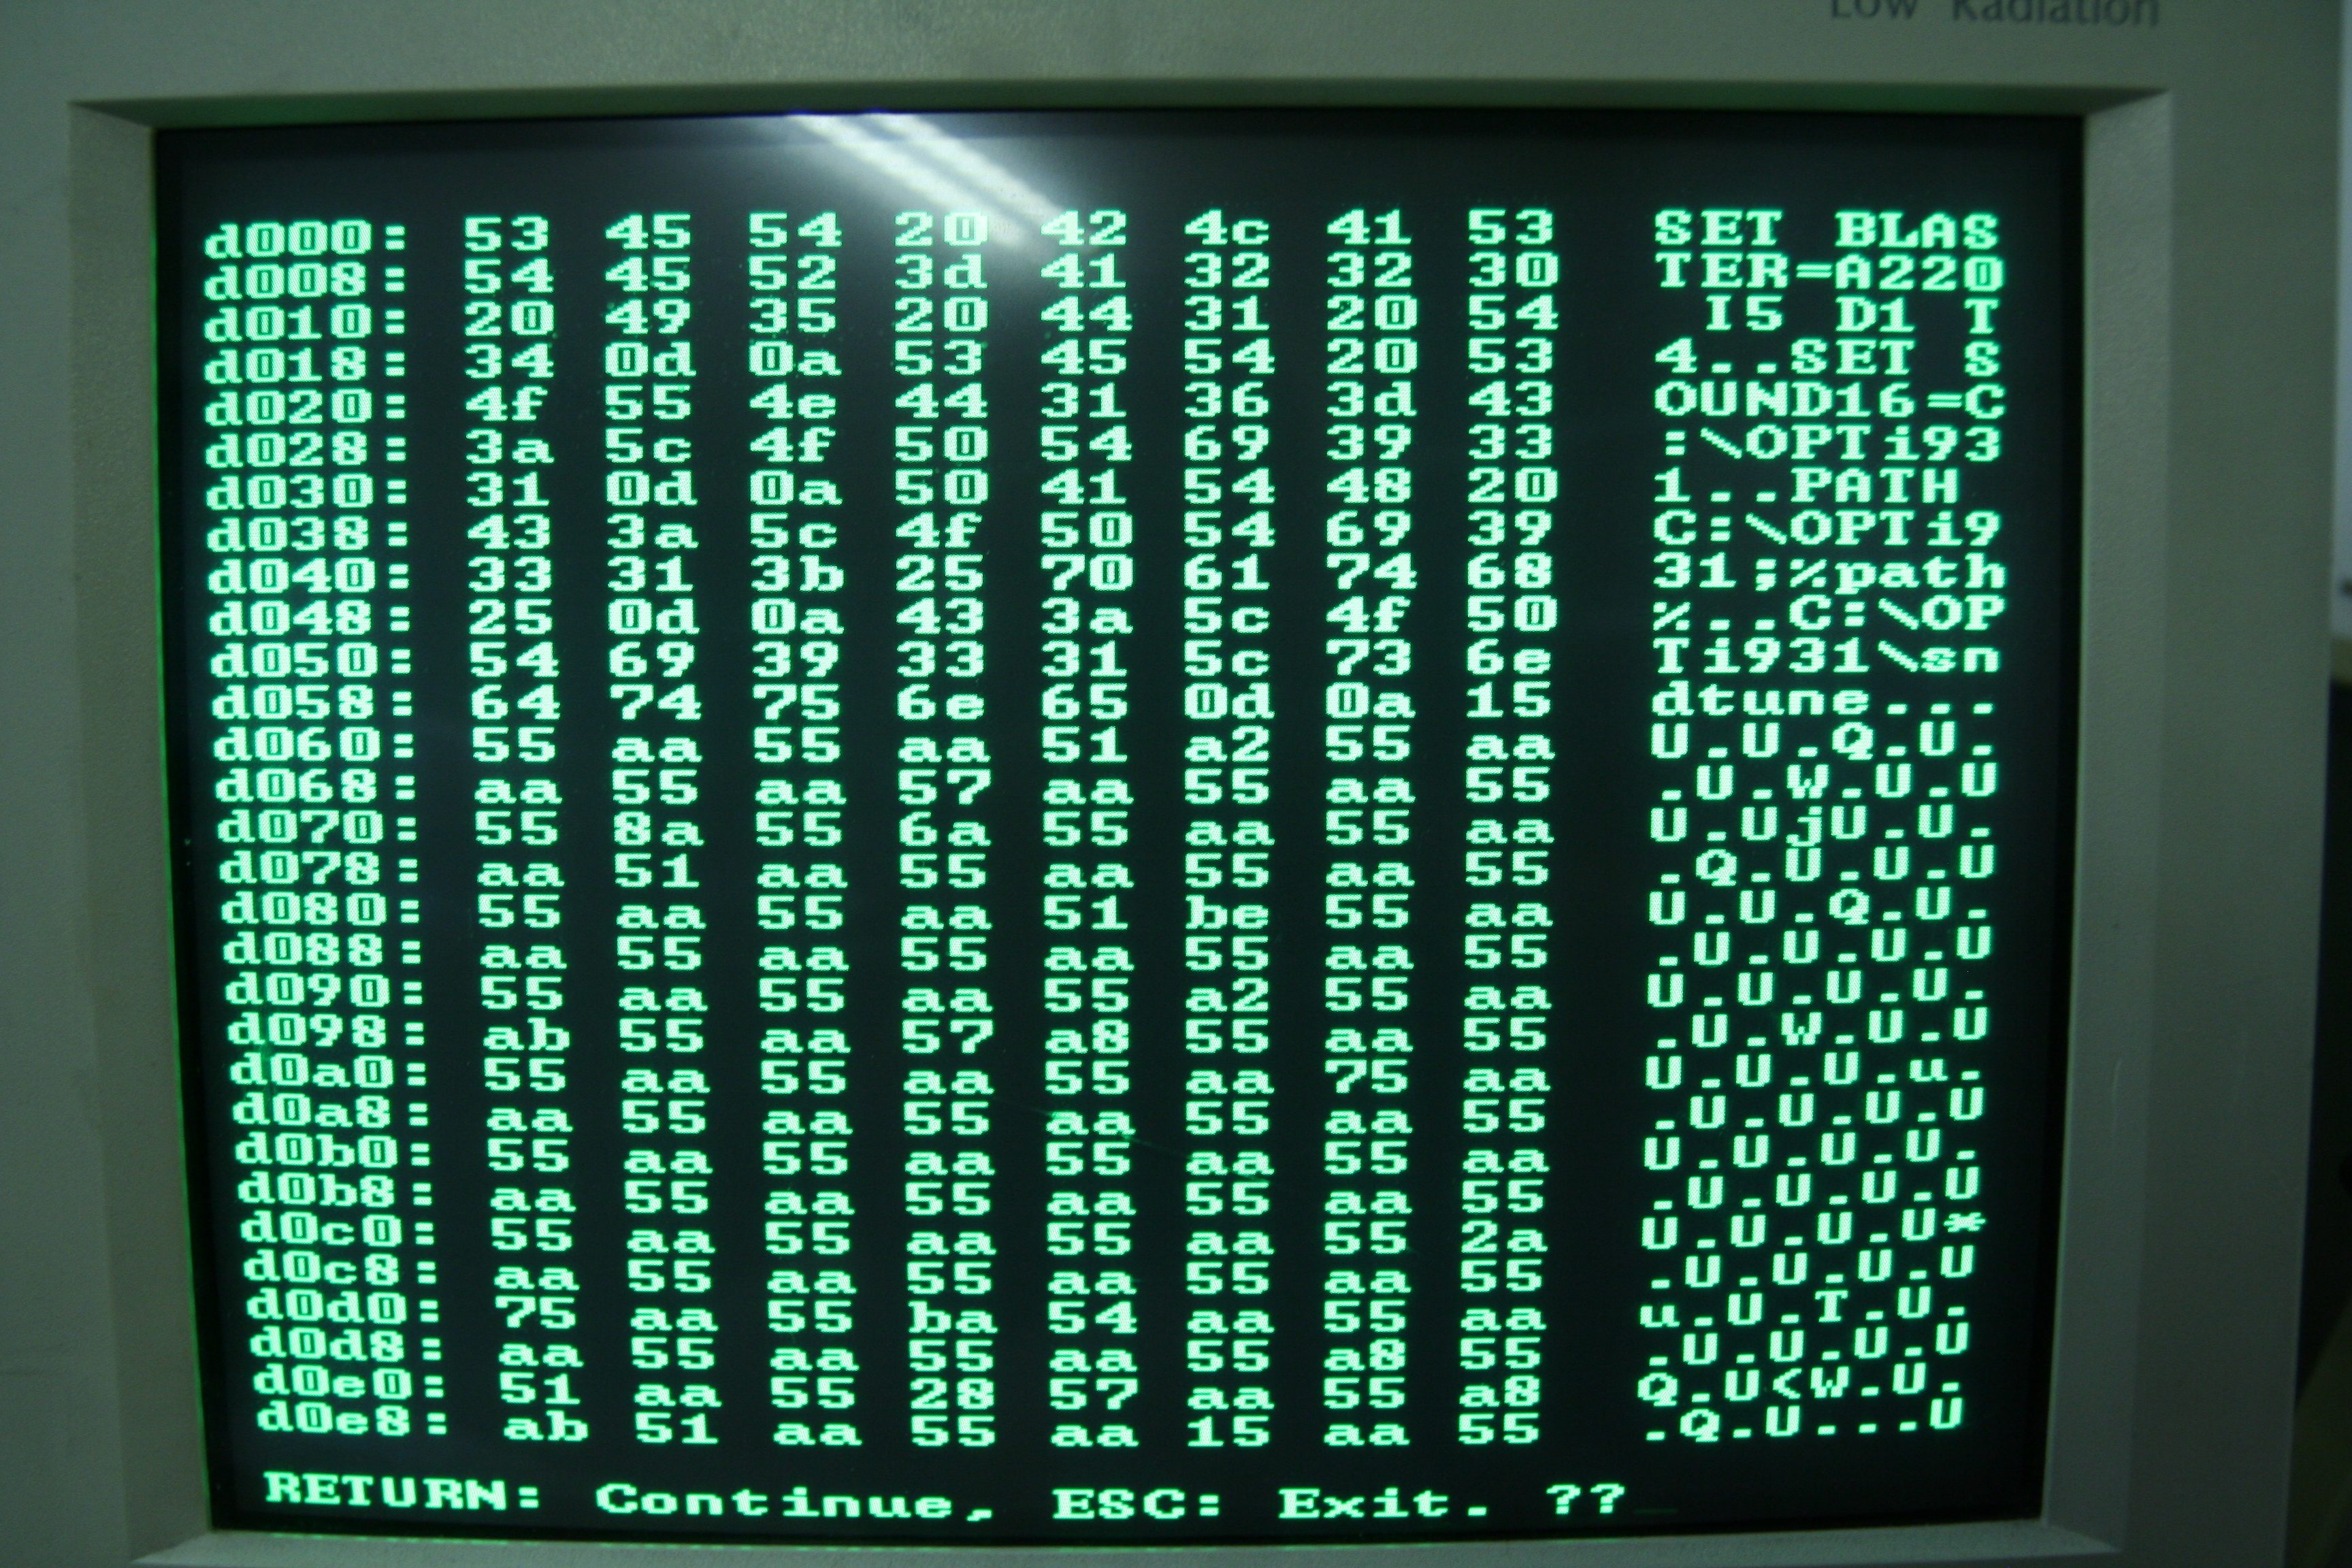 8 Bit Computer From Scratch The Making Of Source Http Wwwelectronicscircuitscom Cirdir Data Printerport Now Lets Change First 3 Letters Set Into Abc And Save Modified A New File Called Autoexecbak